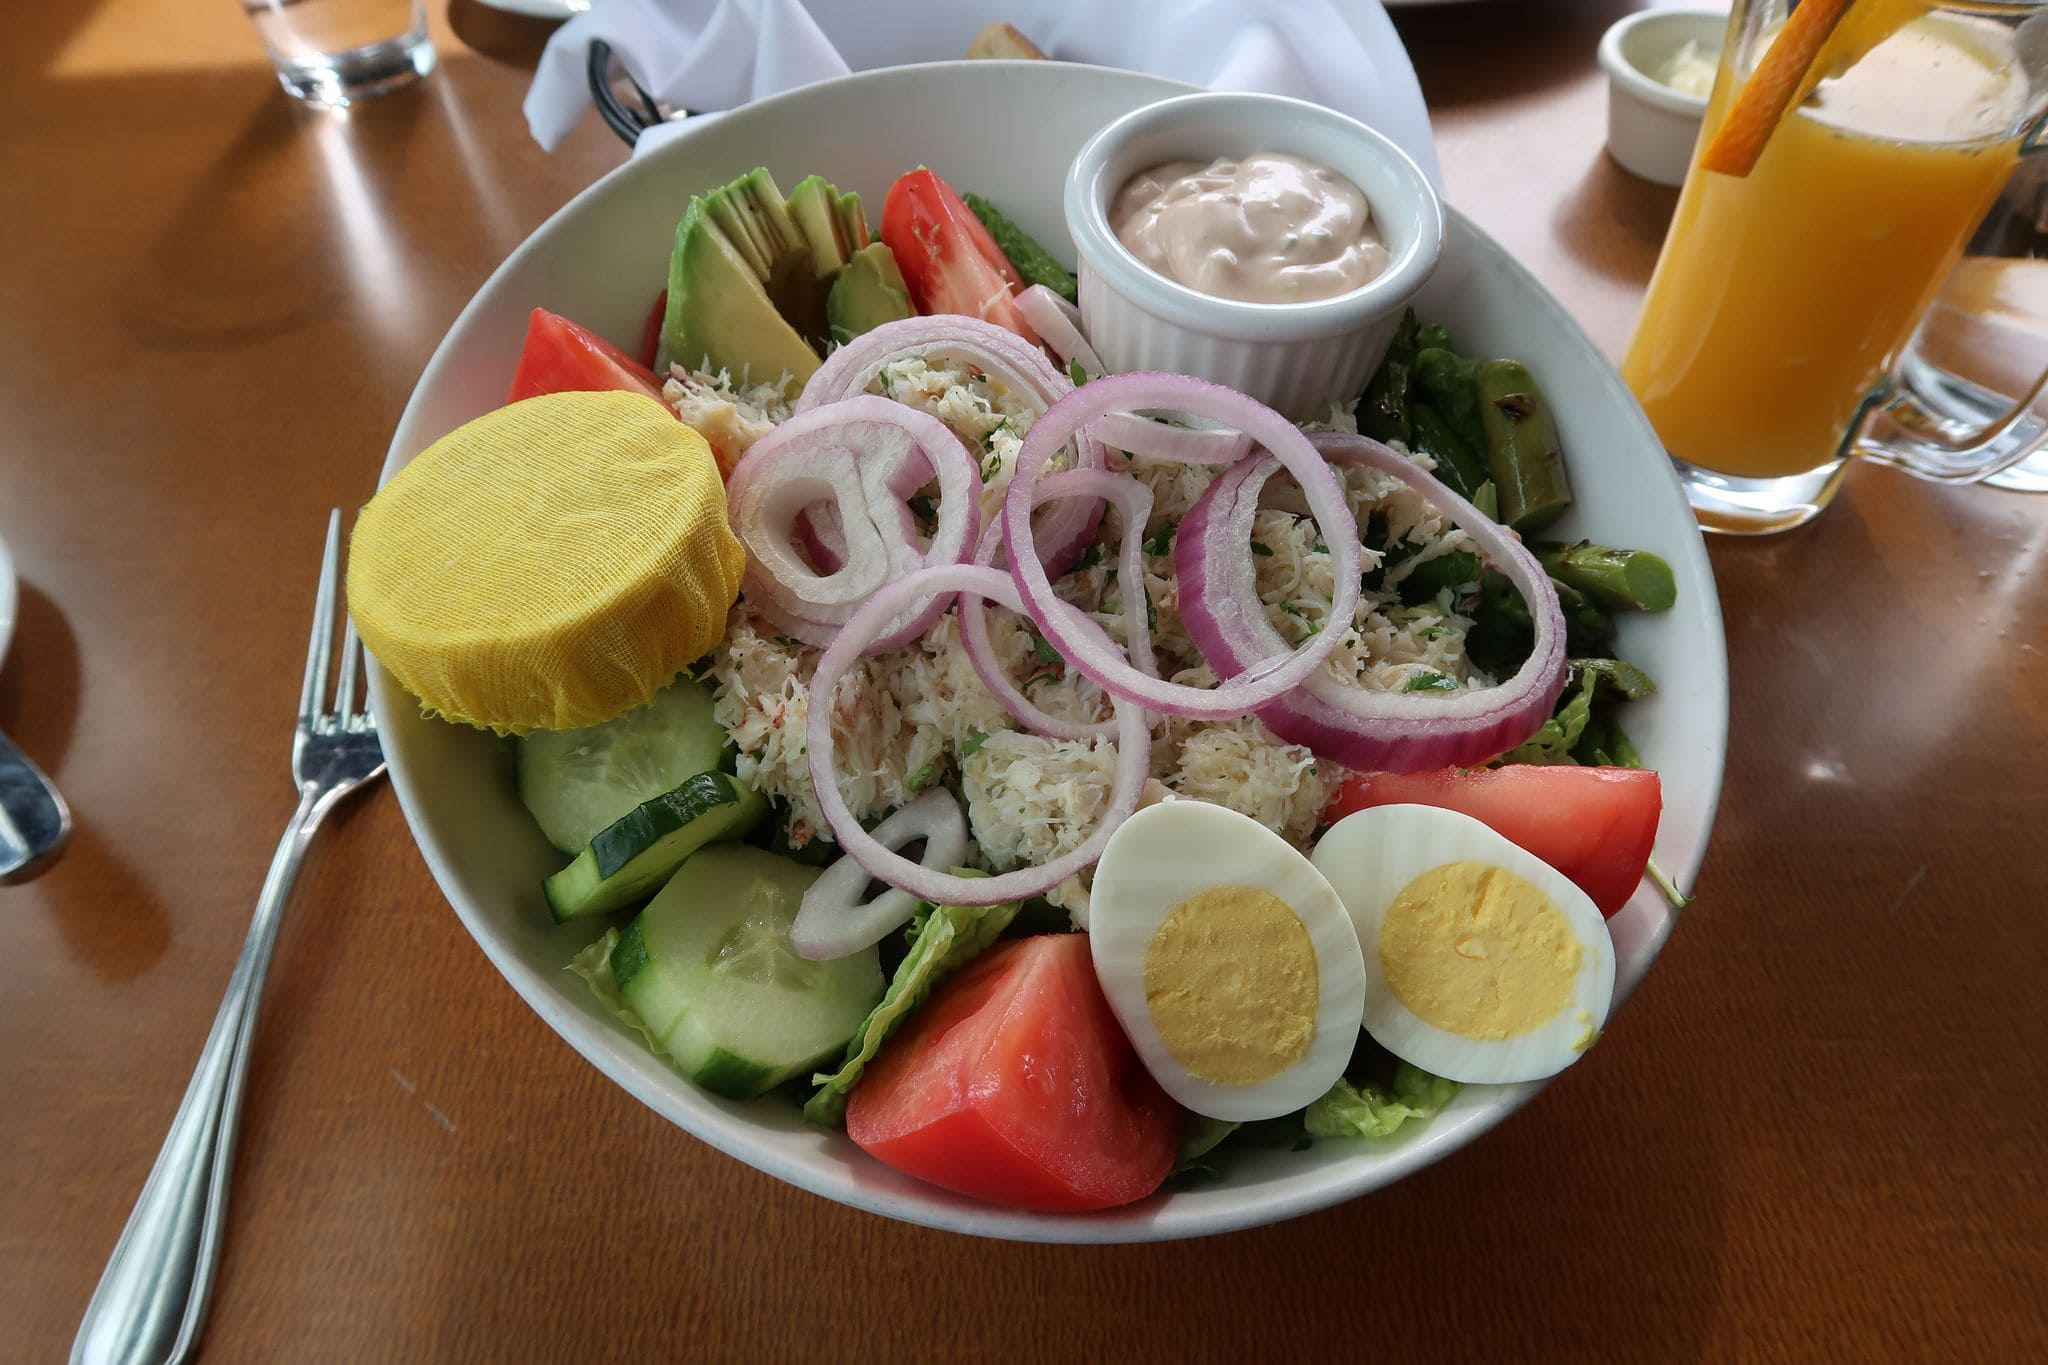 5 Best Restaurants In Sausalito For Lunch